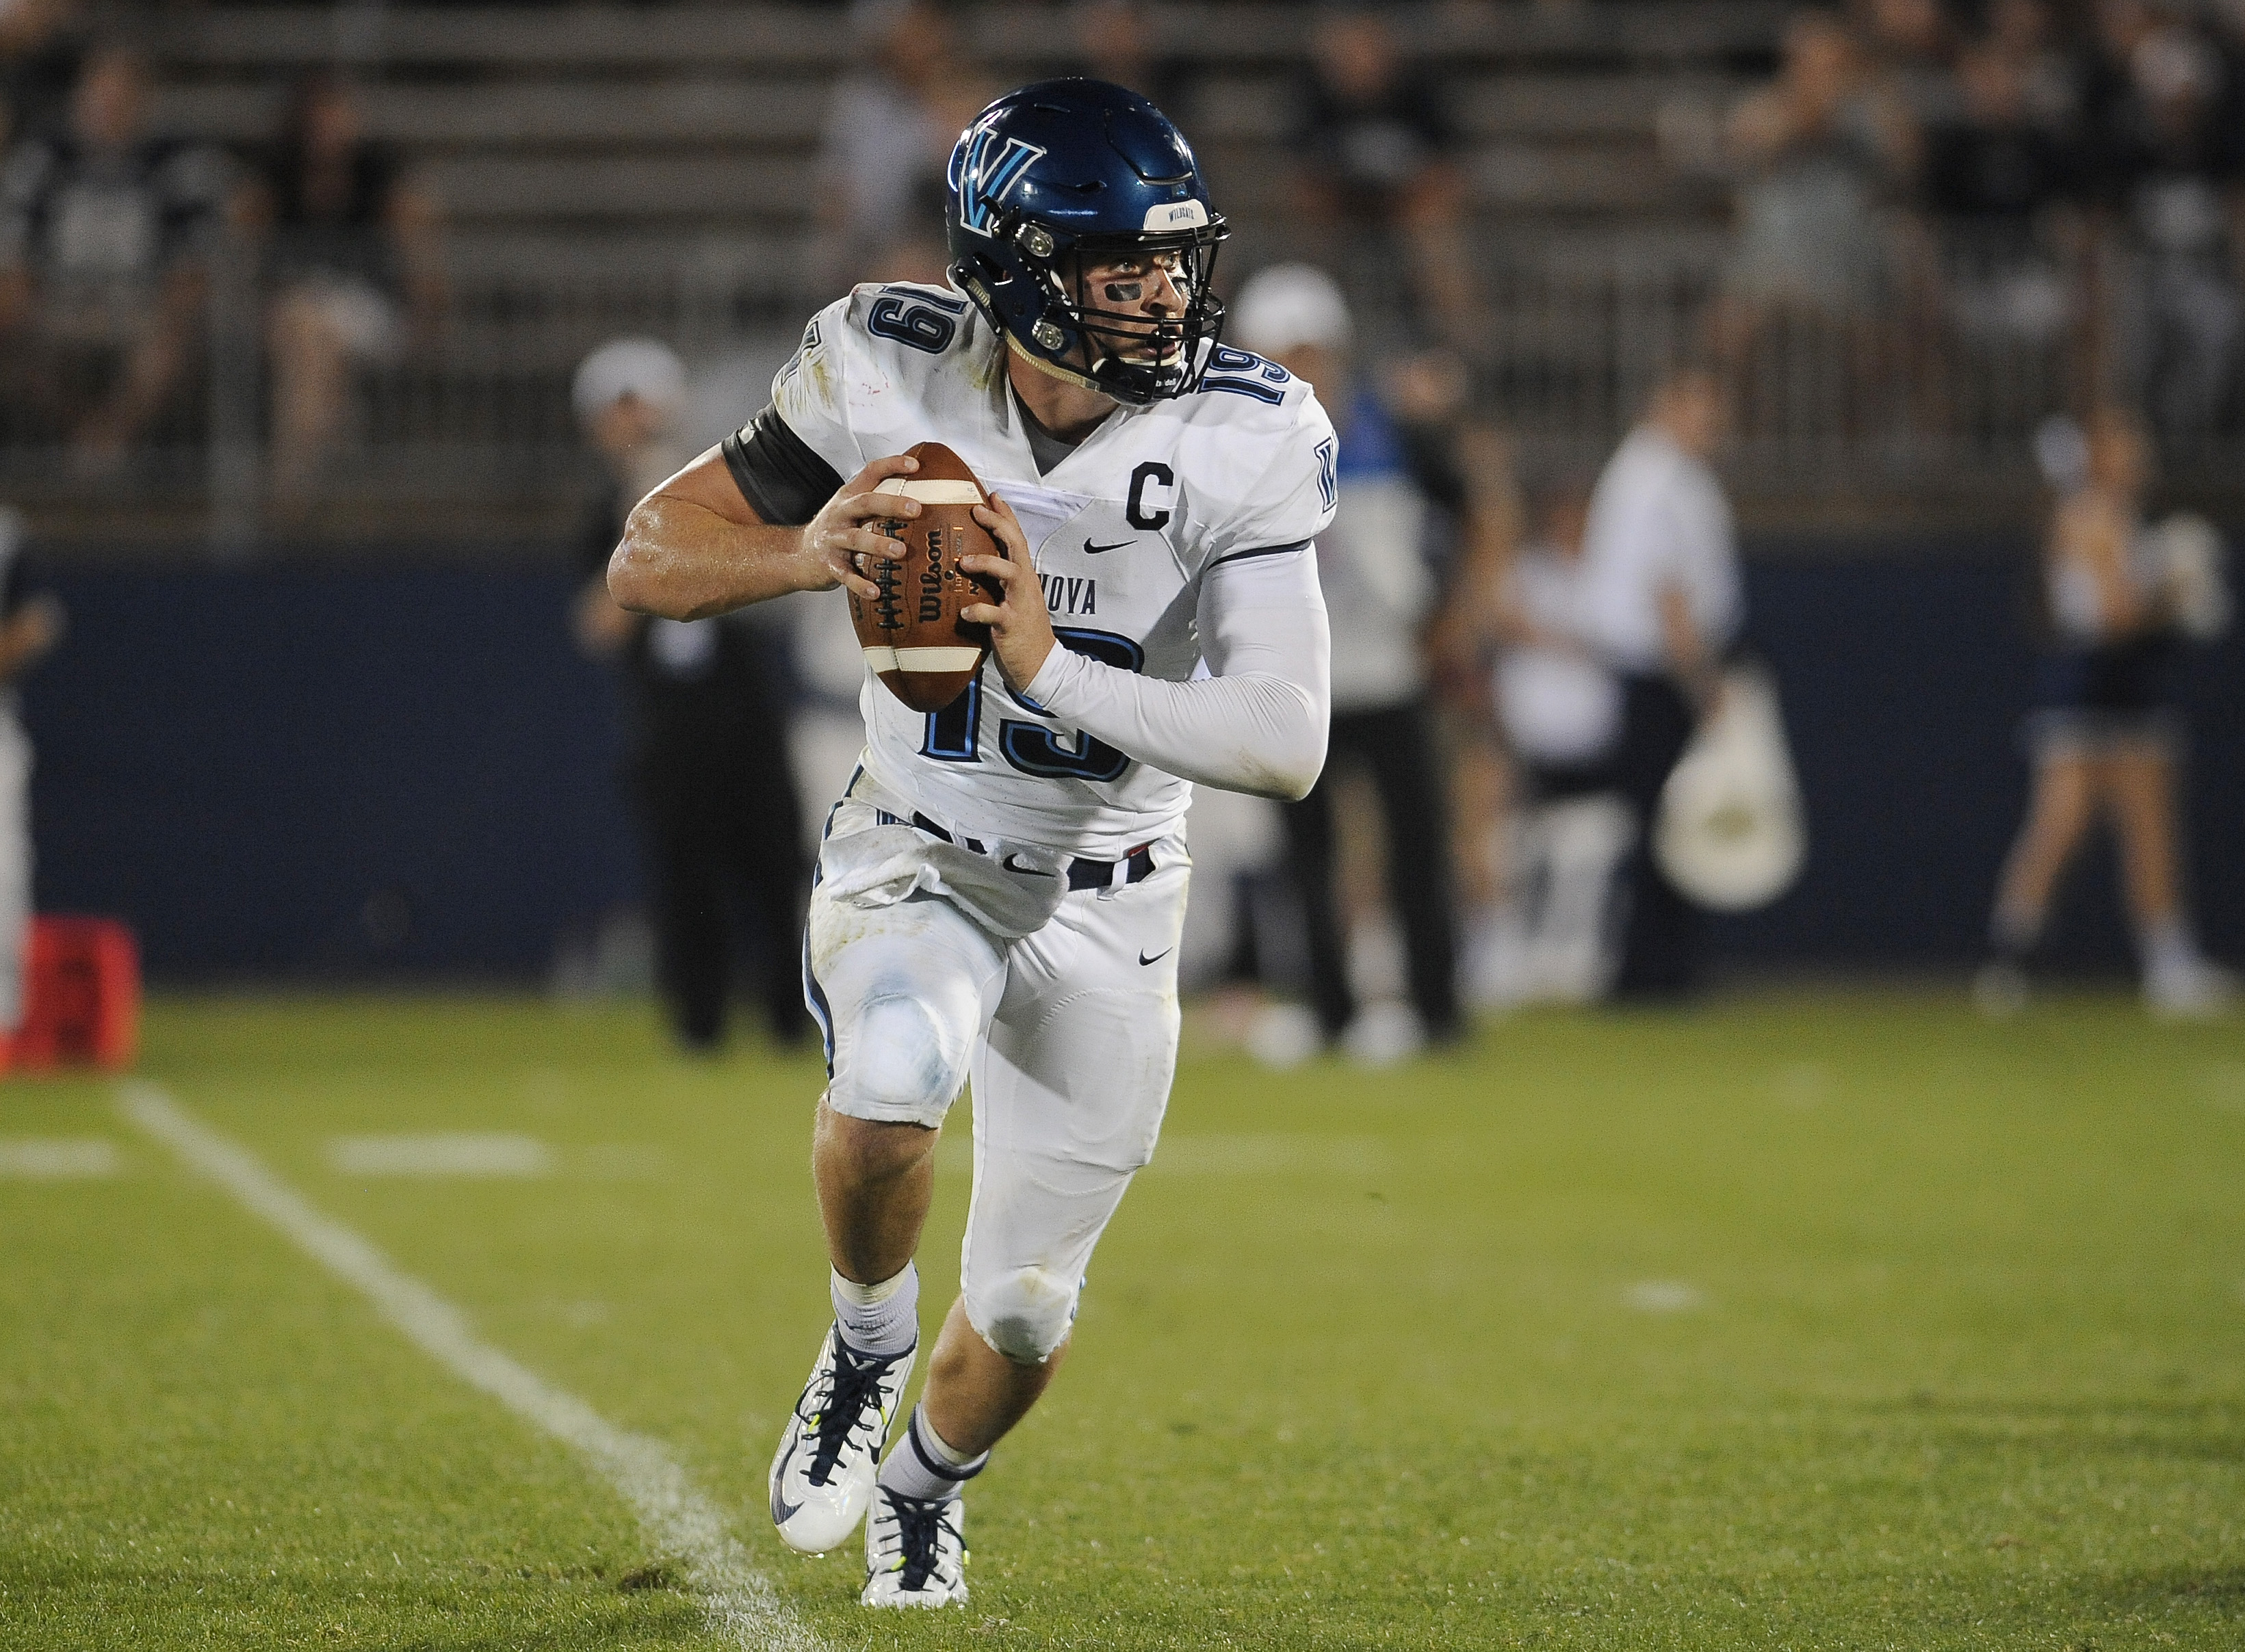 Villanova quarterback John Robertson (19) during the second half of an NCAA college football game at Pratt & Whitney Stadium at Rentschler Field against Connecticut, Thursday, Sept. 3, 2015, in East Hartford, Conn. UConn won 20-15. (AP Photo/Jessica Hill)